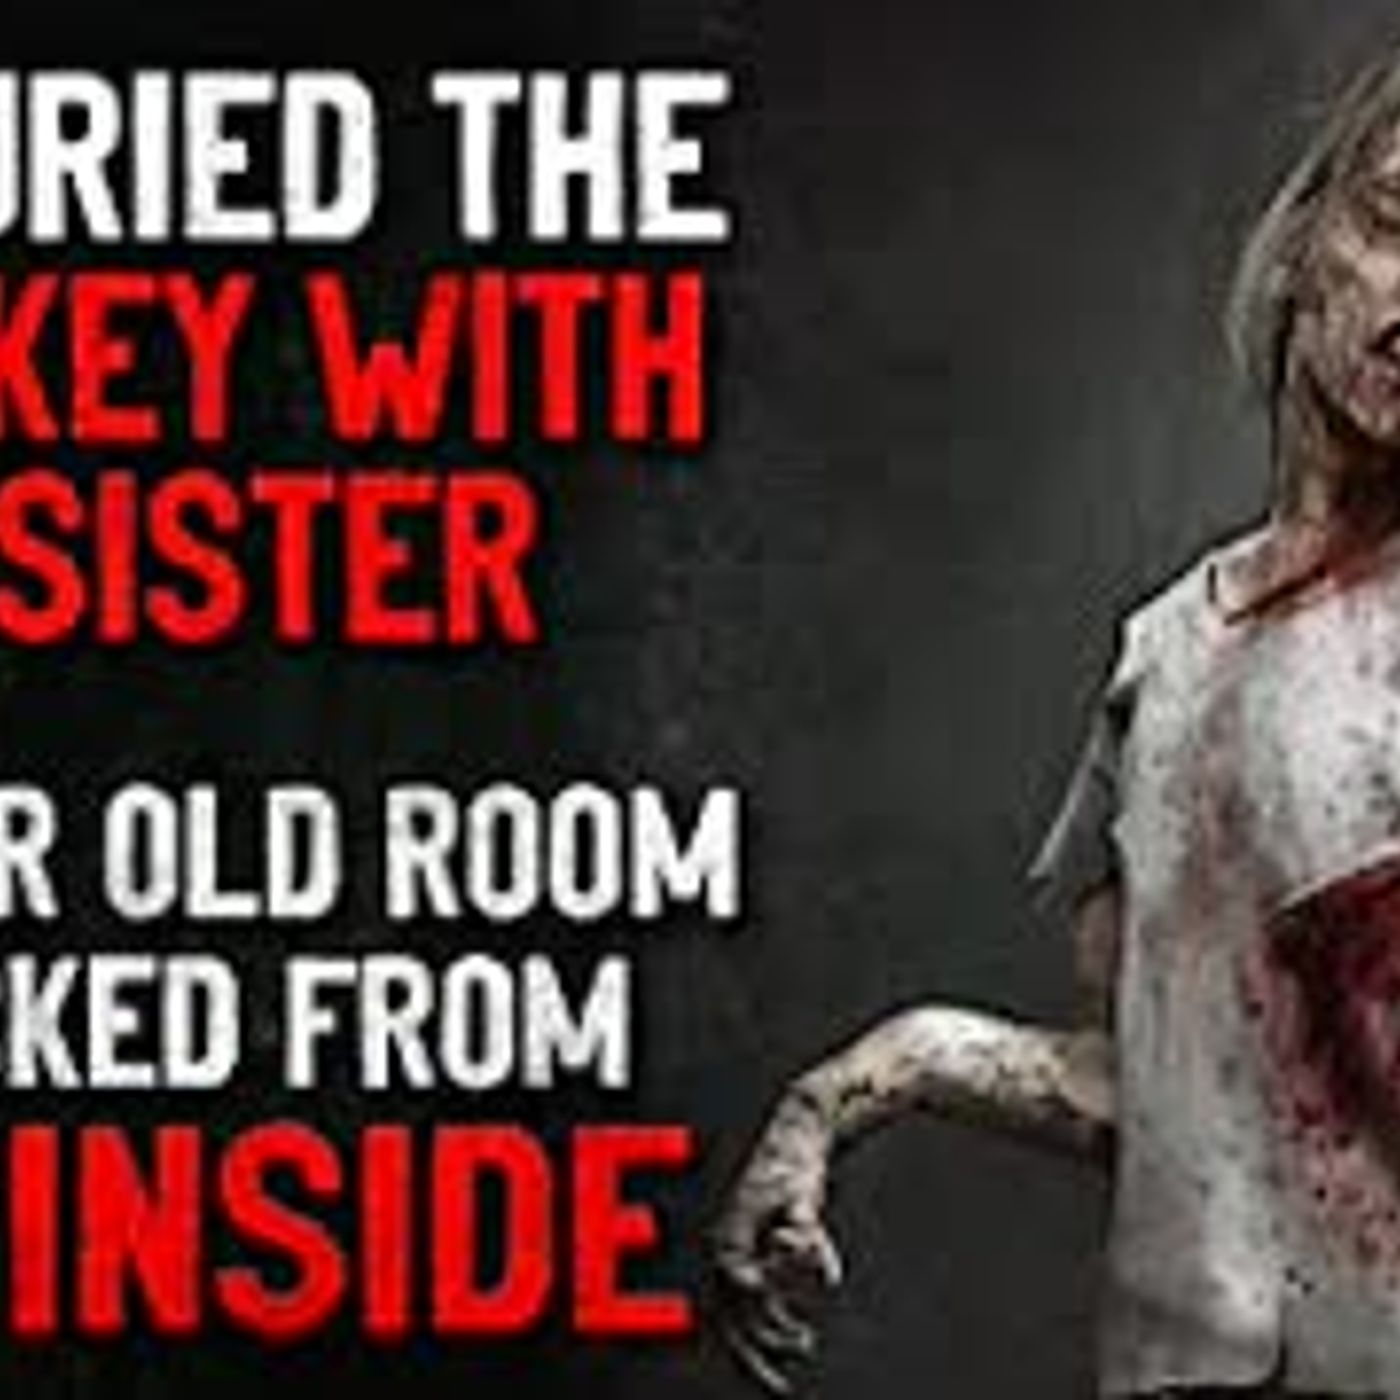 """We buried the only key with my sister. Now her old room is locked from the inside"" Creepypasta"